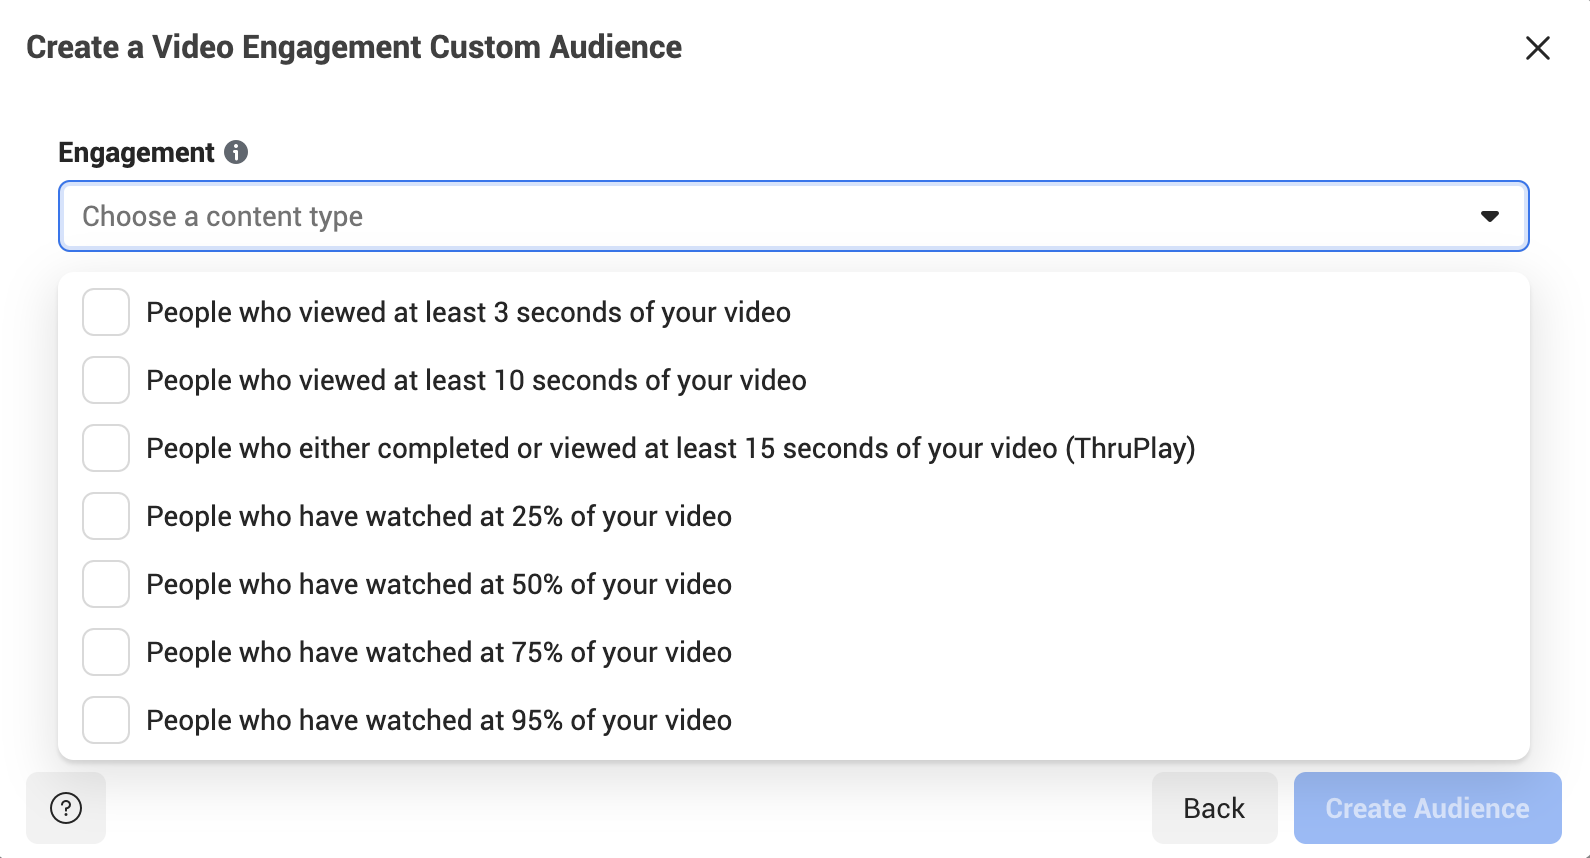 Facebook video engagement audience